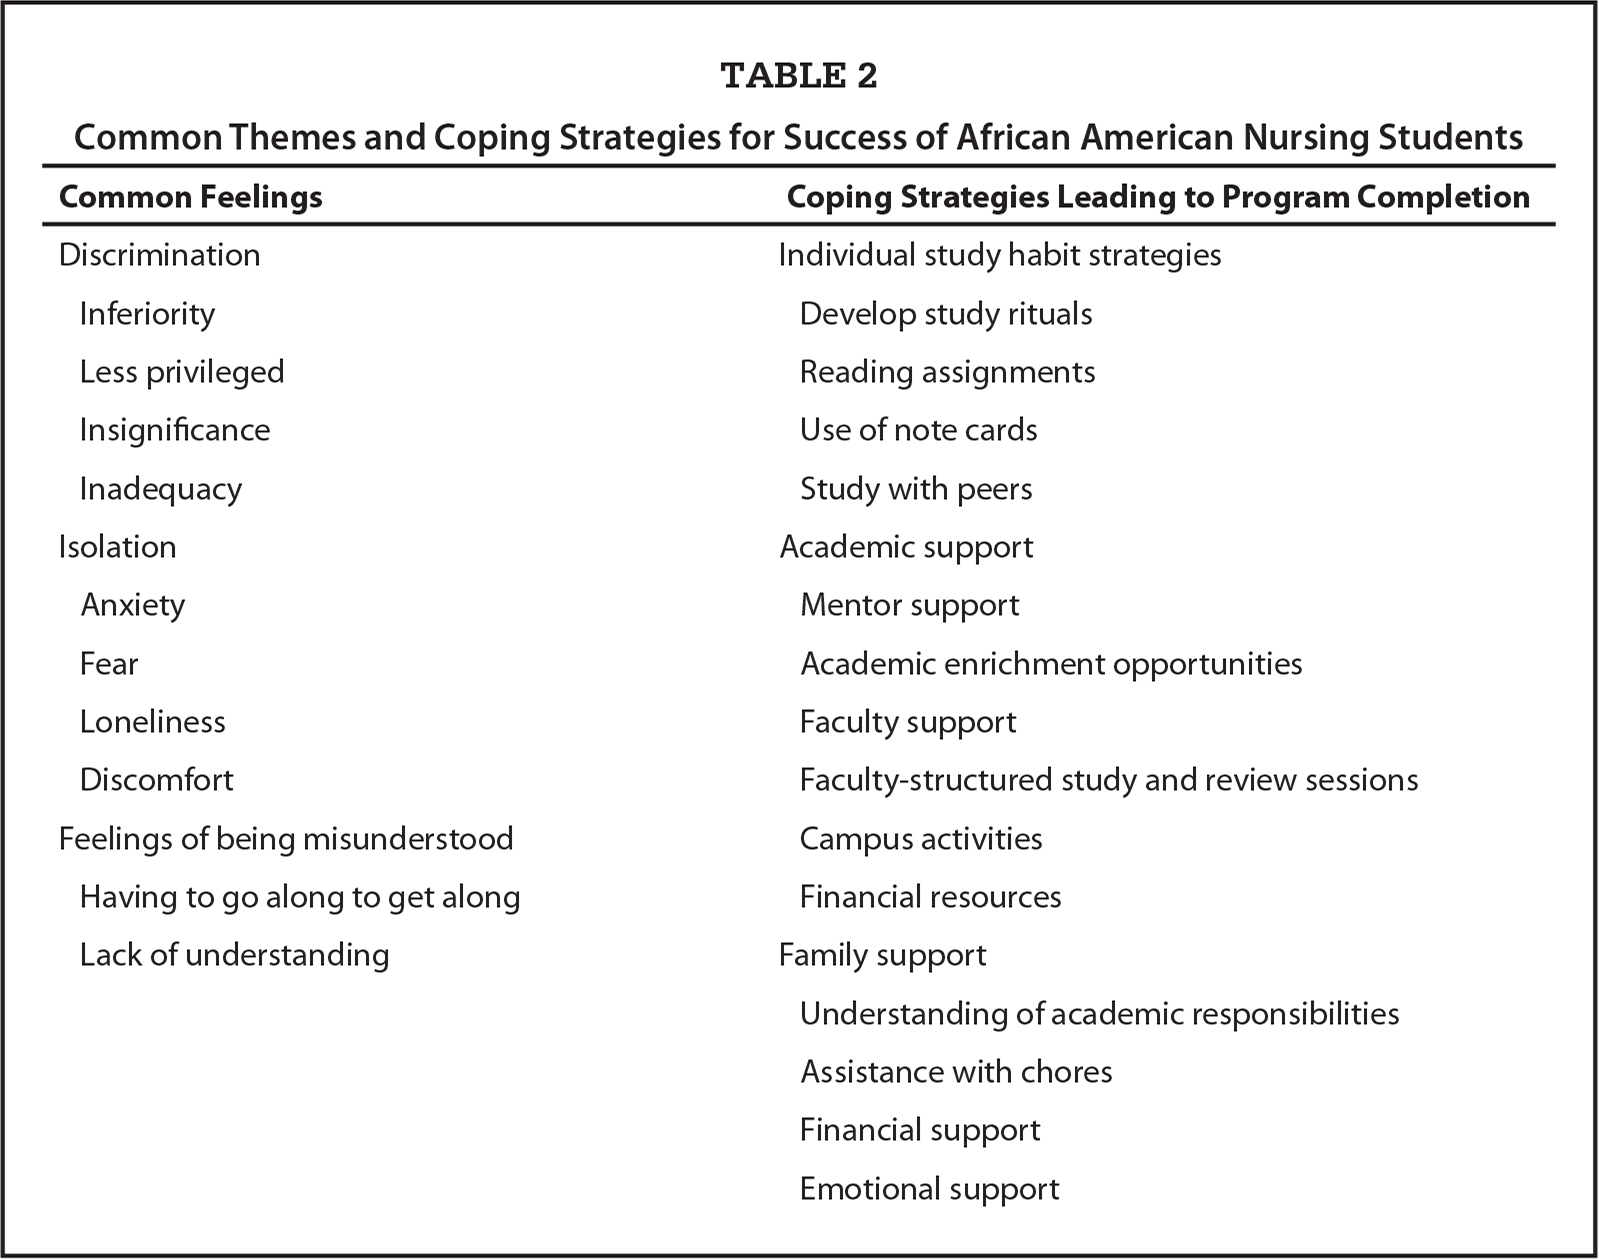 Common Themes and Coping Strategies for Success of African American Nursing Students